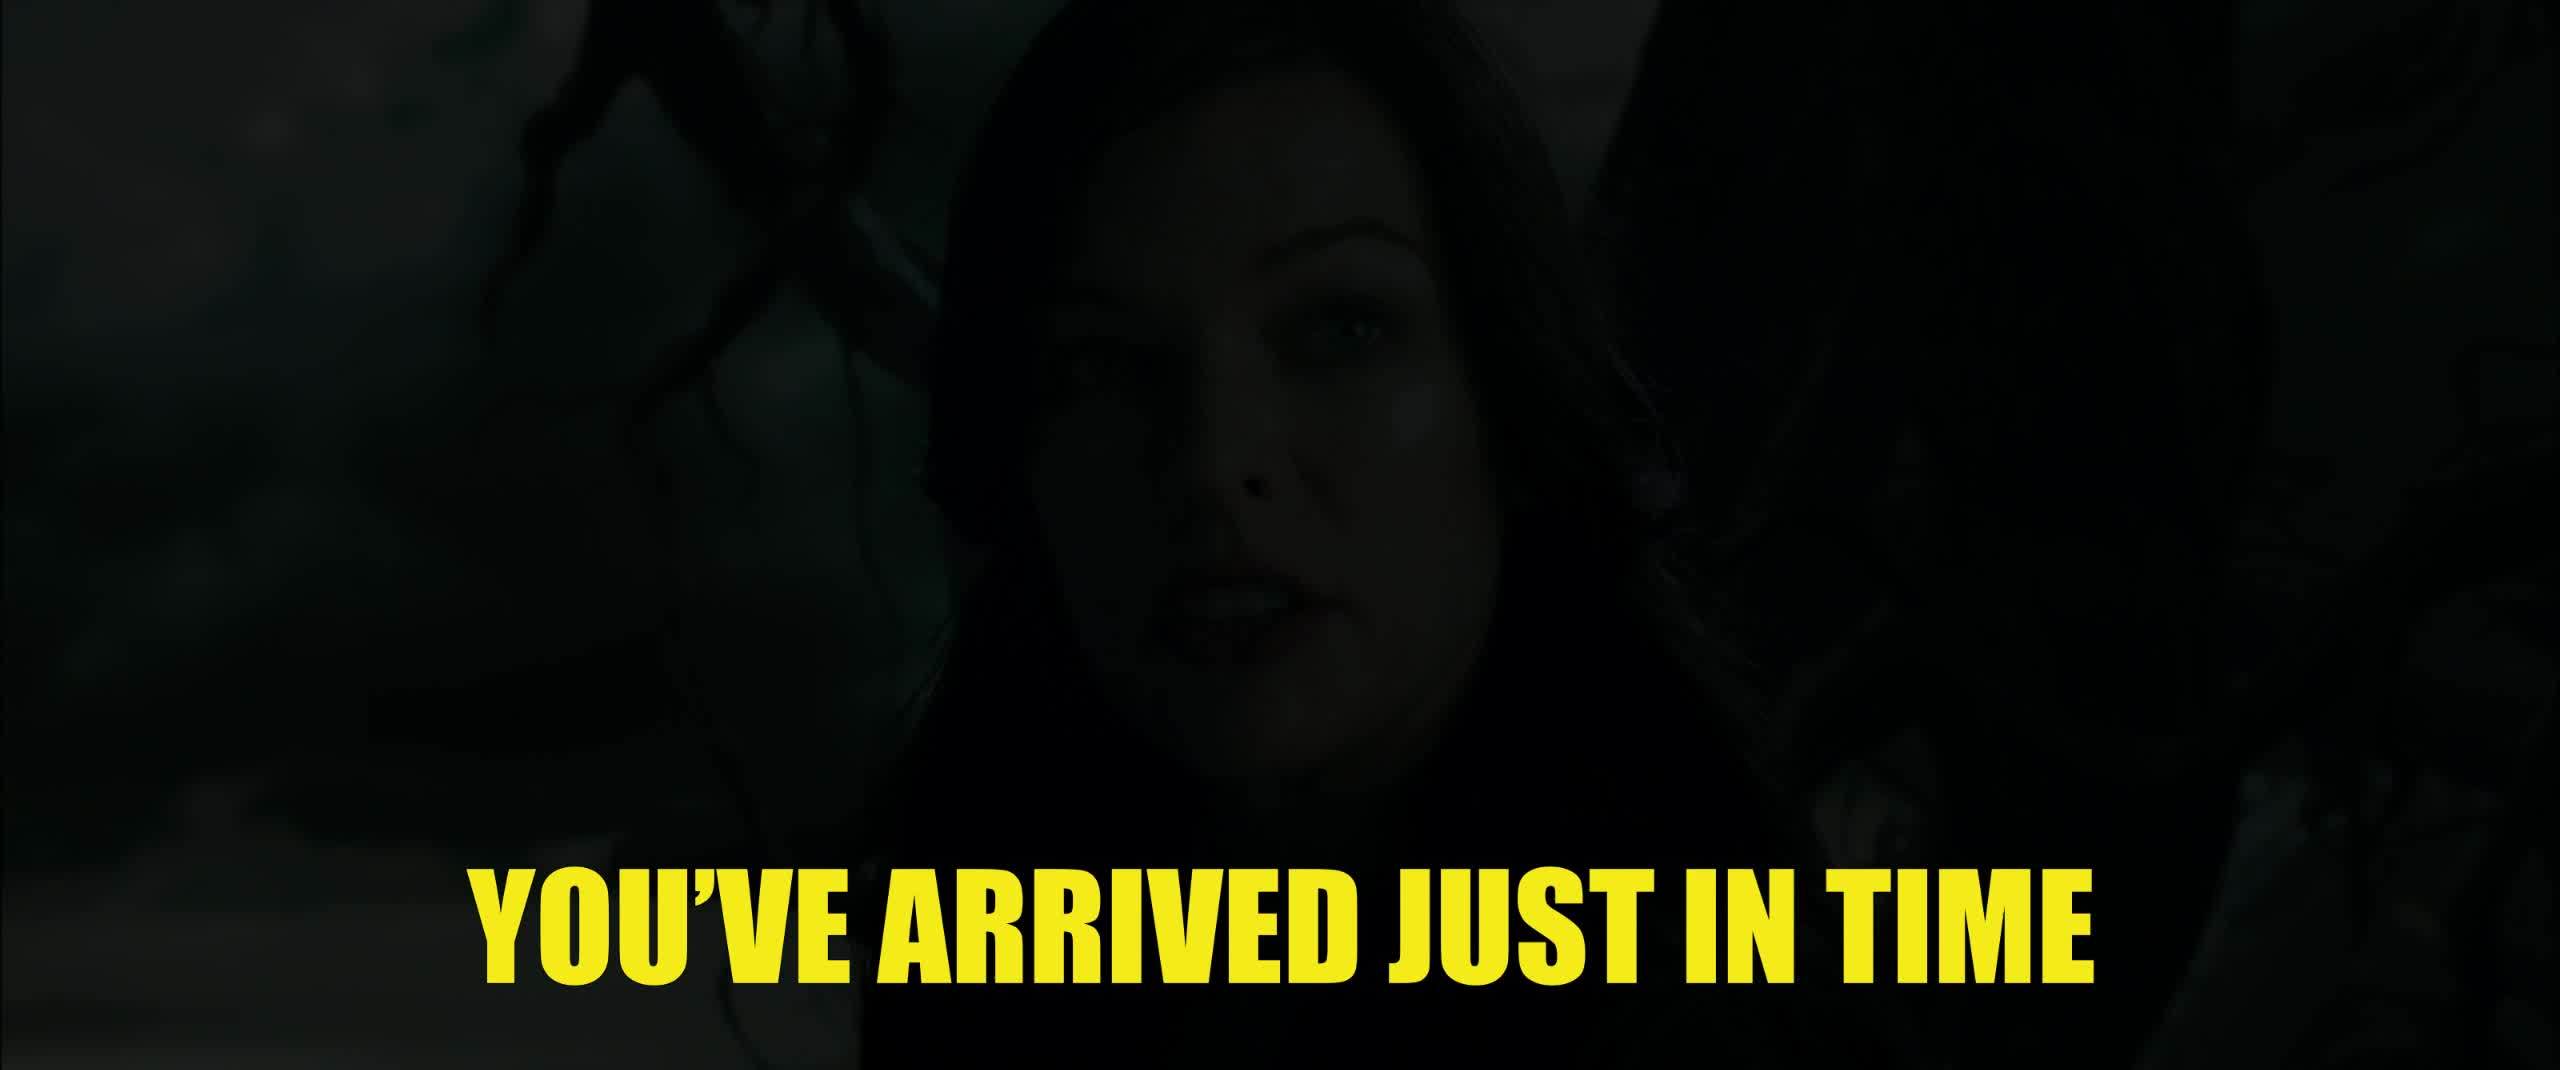 Hellboy, dark horse, dark horse comics, hellboy, hellboy 2019, hellboy movie, milla jovovich, party time, perfect, superhero, superheroes, time, Hellboy Just In Time Milla Jovovich GIFs